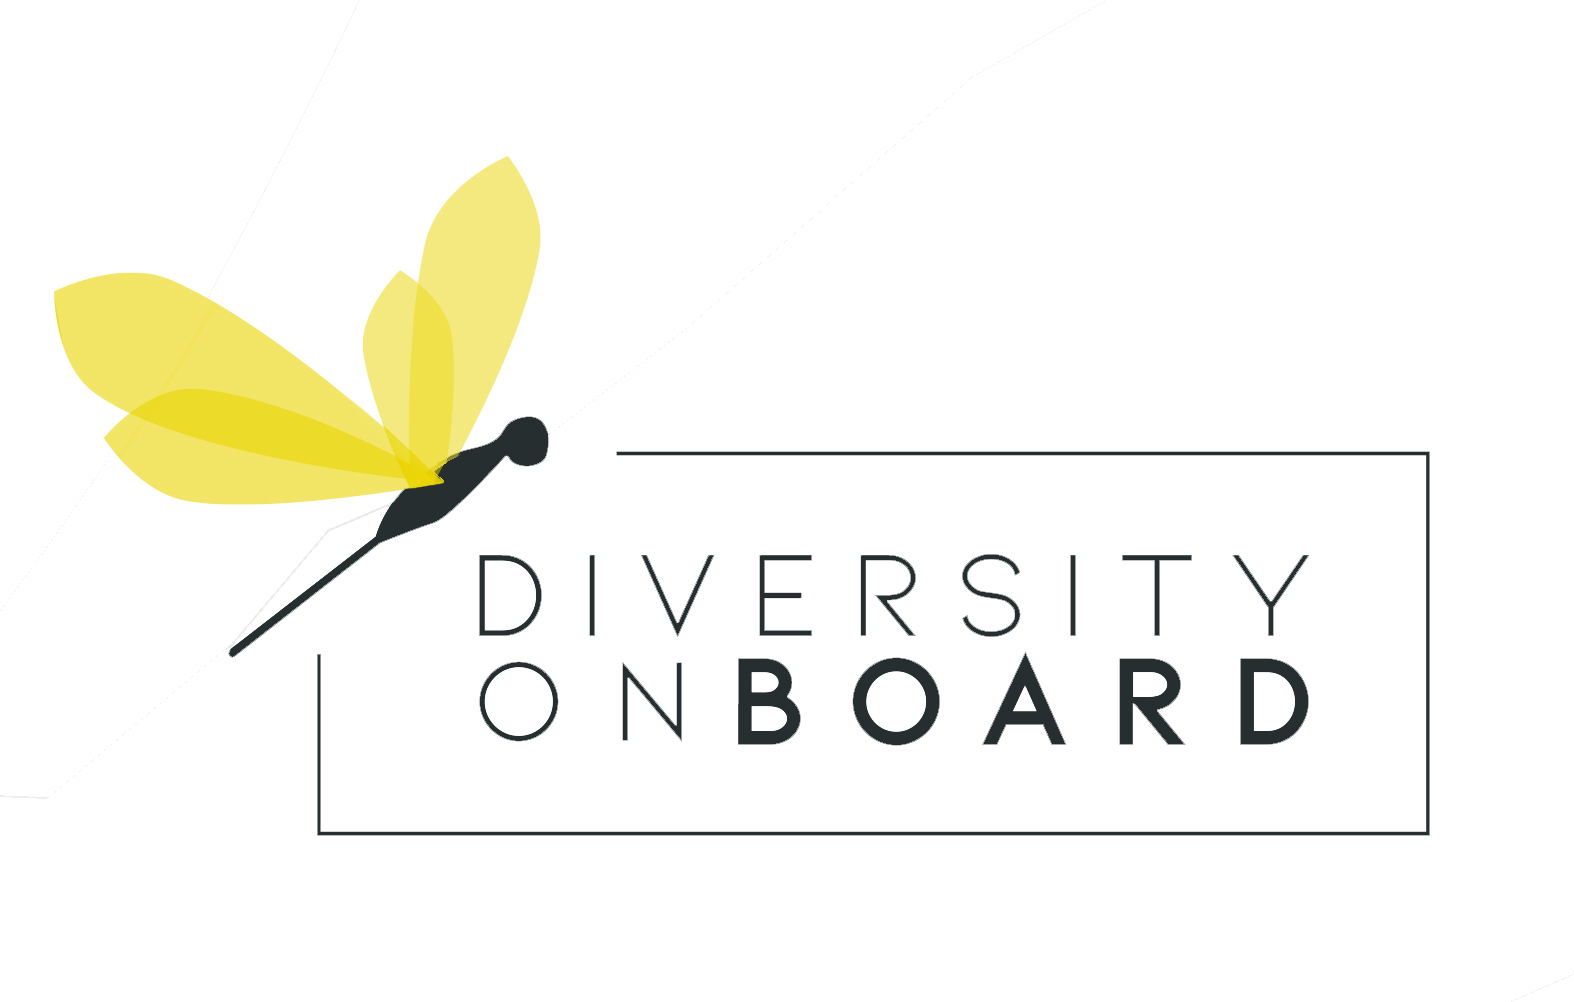 Posted by Diversity On Board